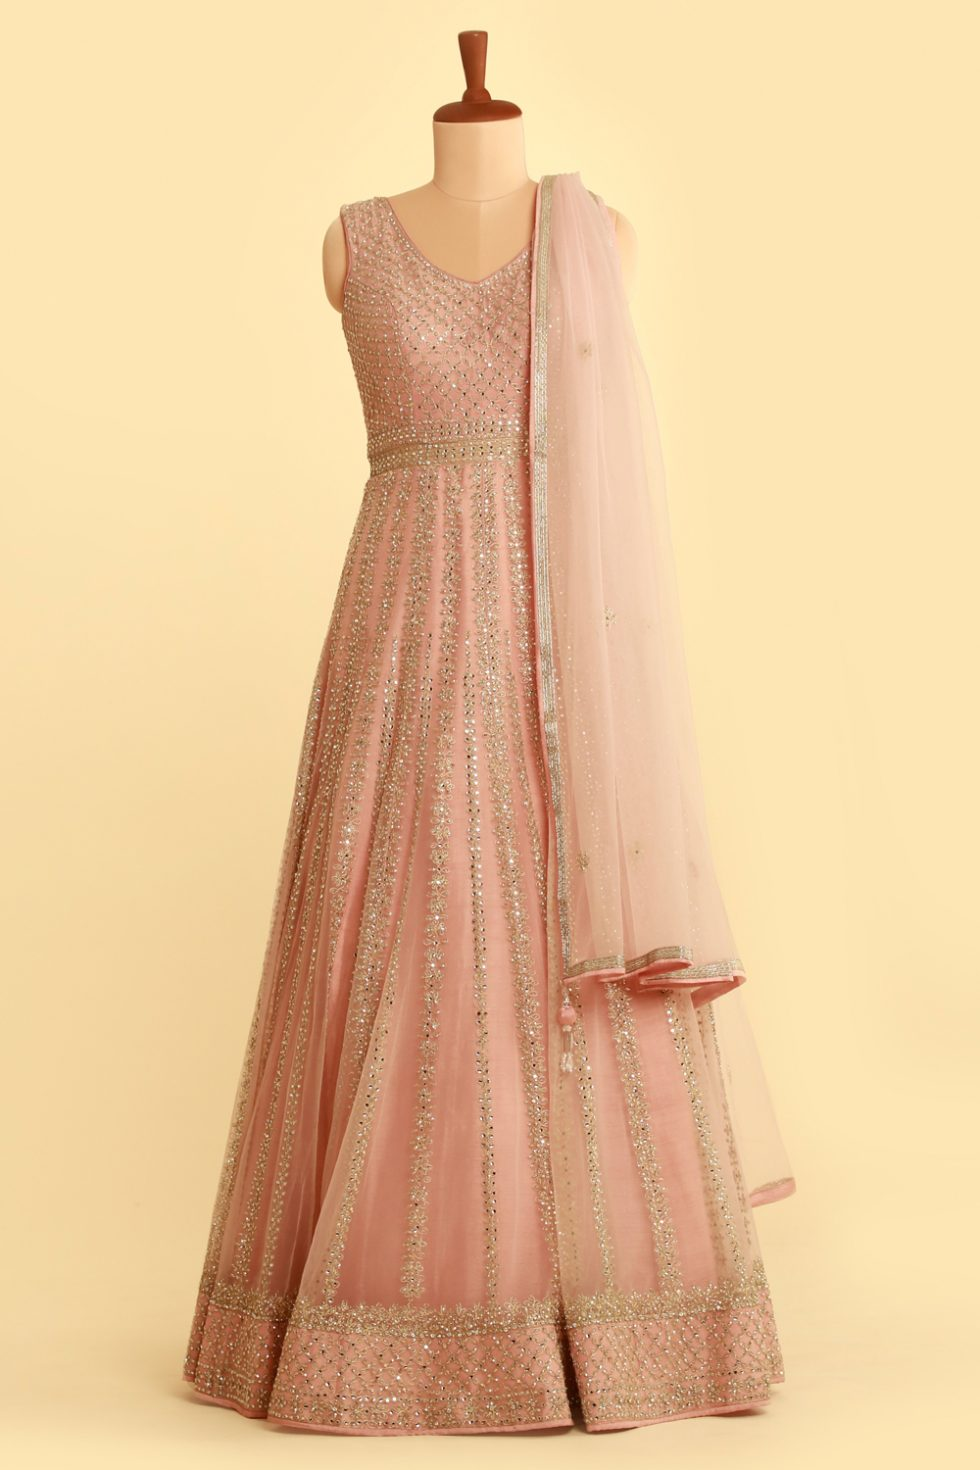 Baby pink anarkali gown set with matching dupatta and intricate silver details